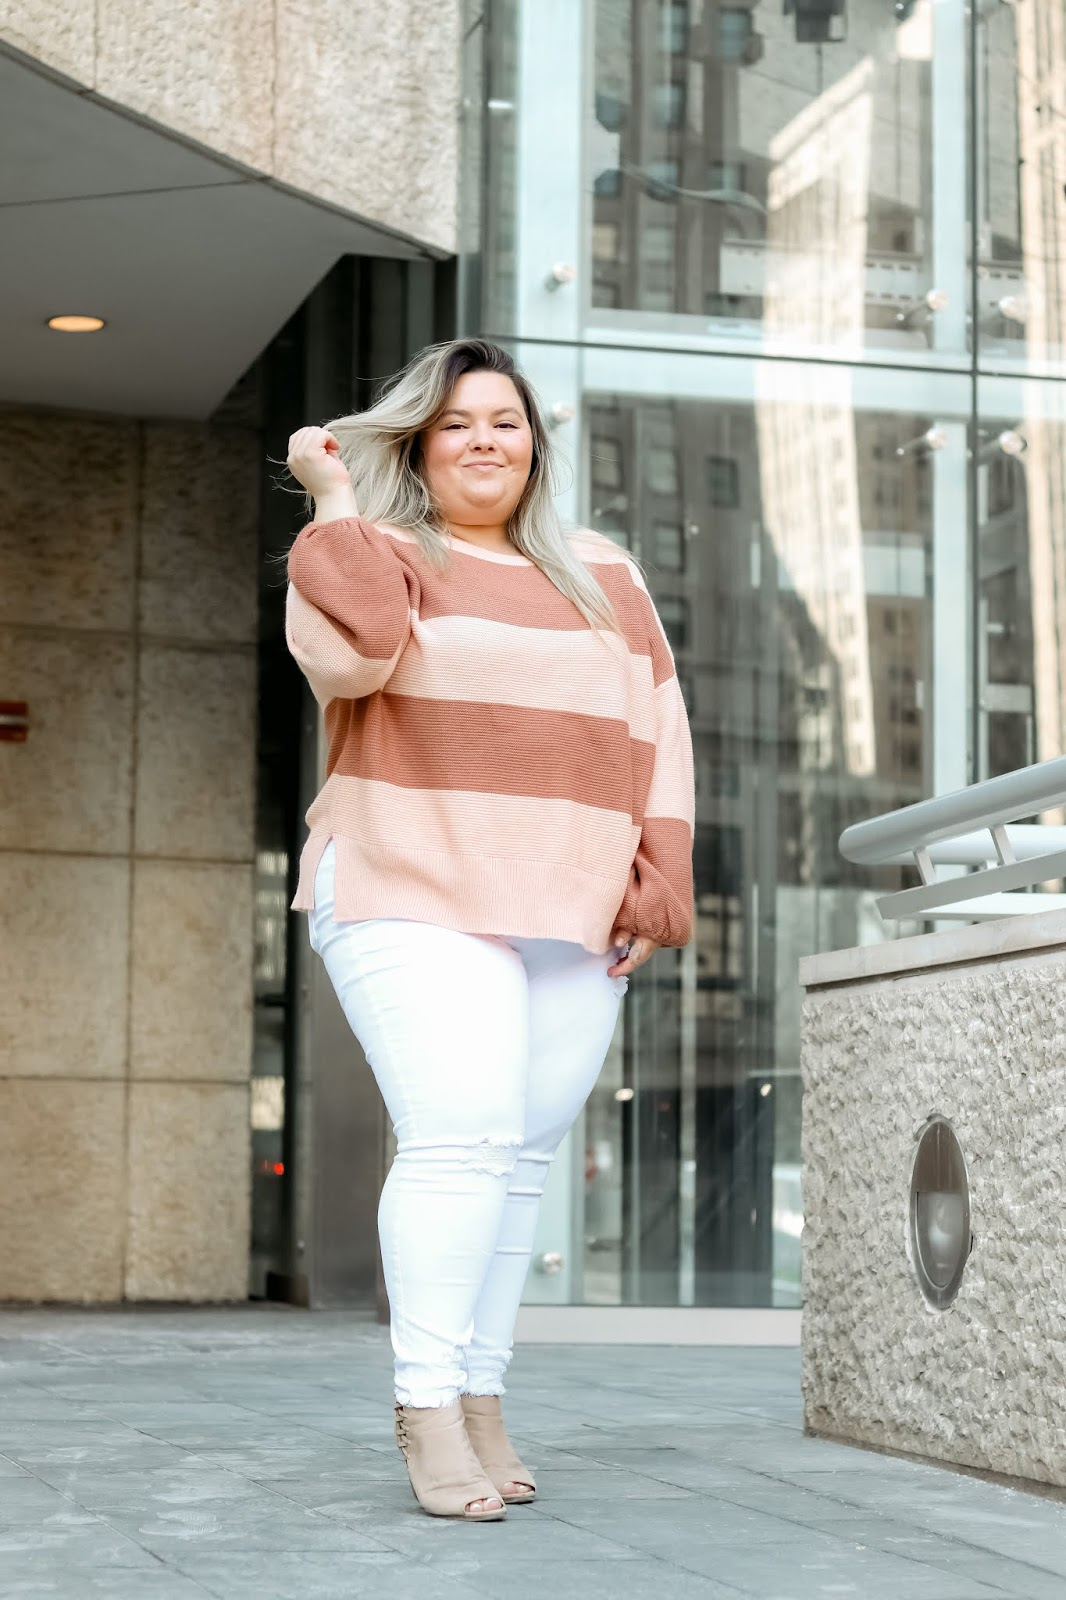 Chicago Plus Size Petite Fashion Blogger, influencer, YouTuber, and model Natalie Craig, of Natalie in the City, reviews Chic Soul's white skinny jeans and a striped sweater.